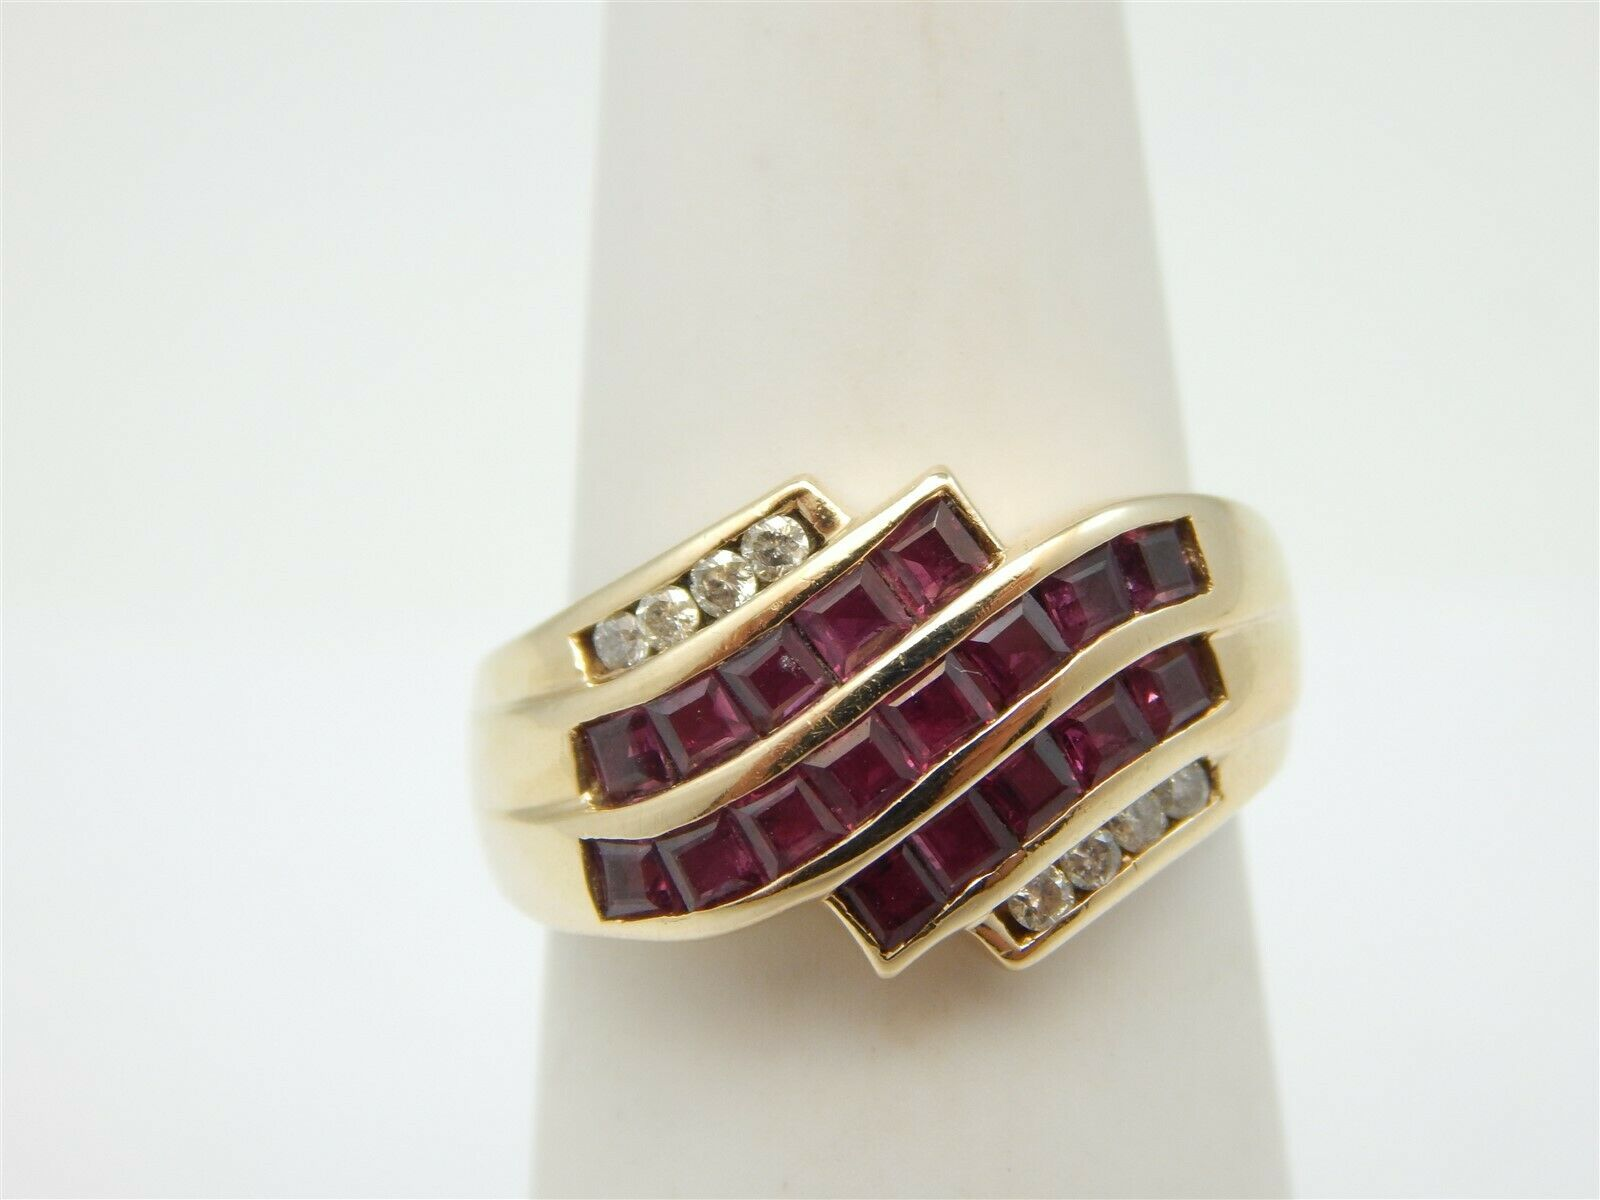 14K YELLOW gold 1.25 TCW PRINCESS CUT PINK SPINEL CROSS OVER RING DIAMOND ACCENT